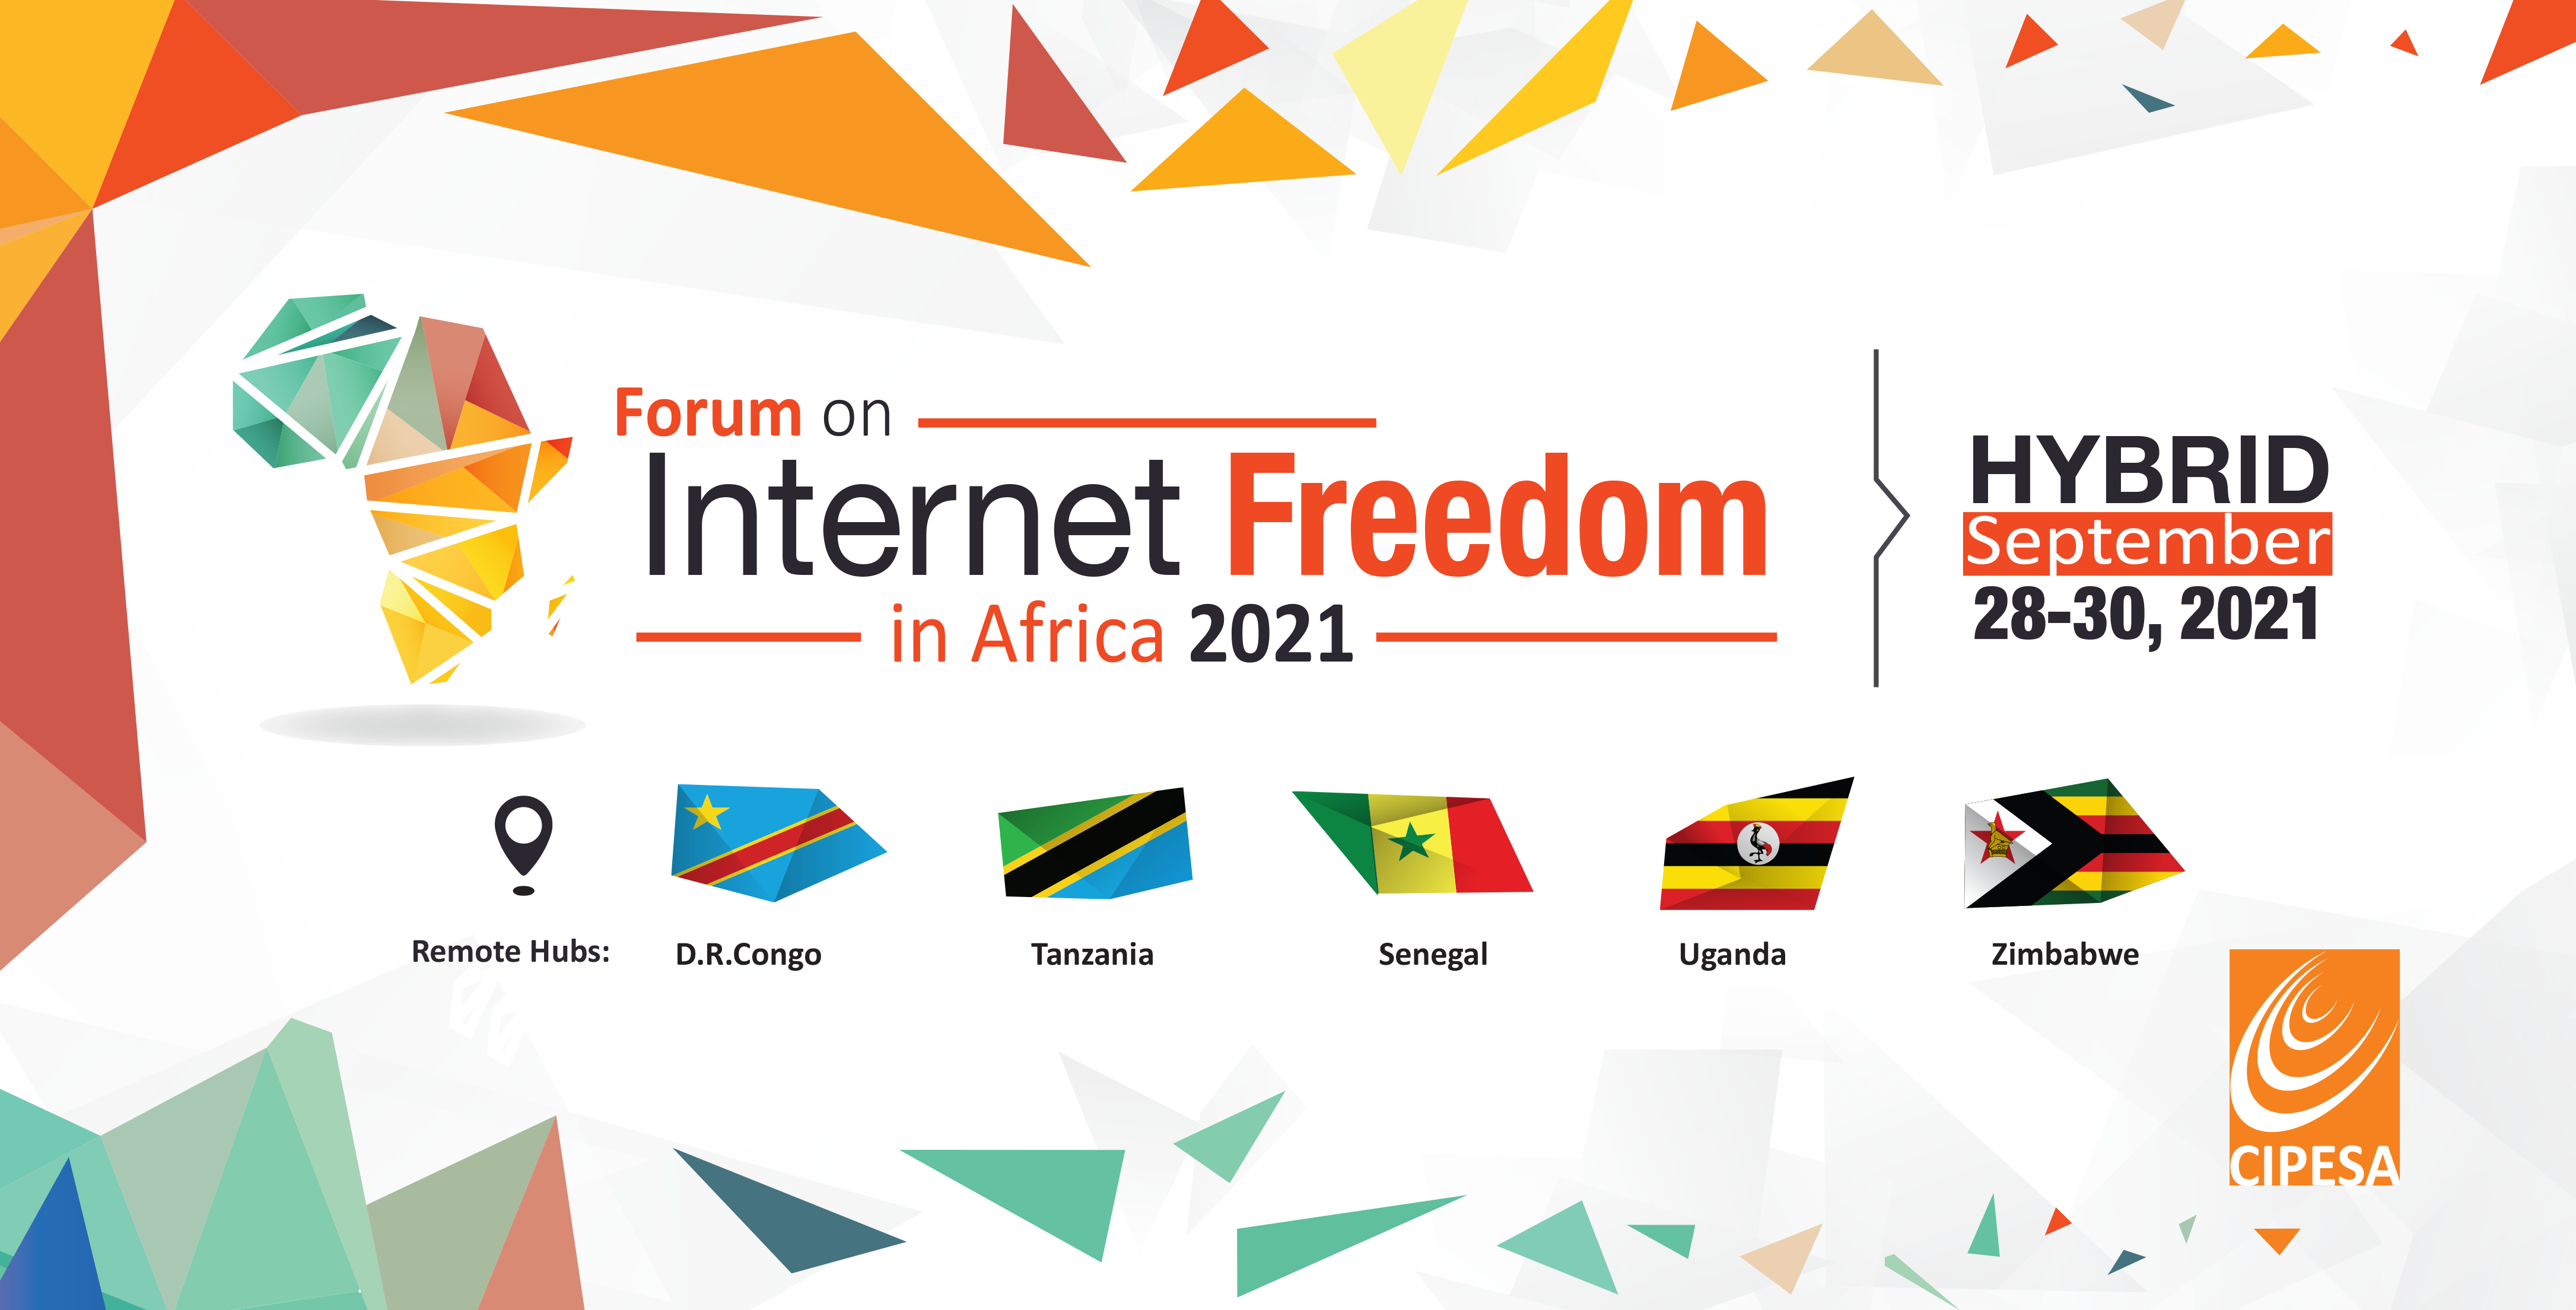 FIFAfrica21 to Feature Remote Hubs in Five African Countries